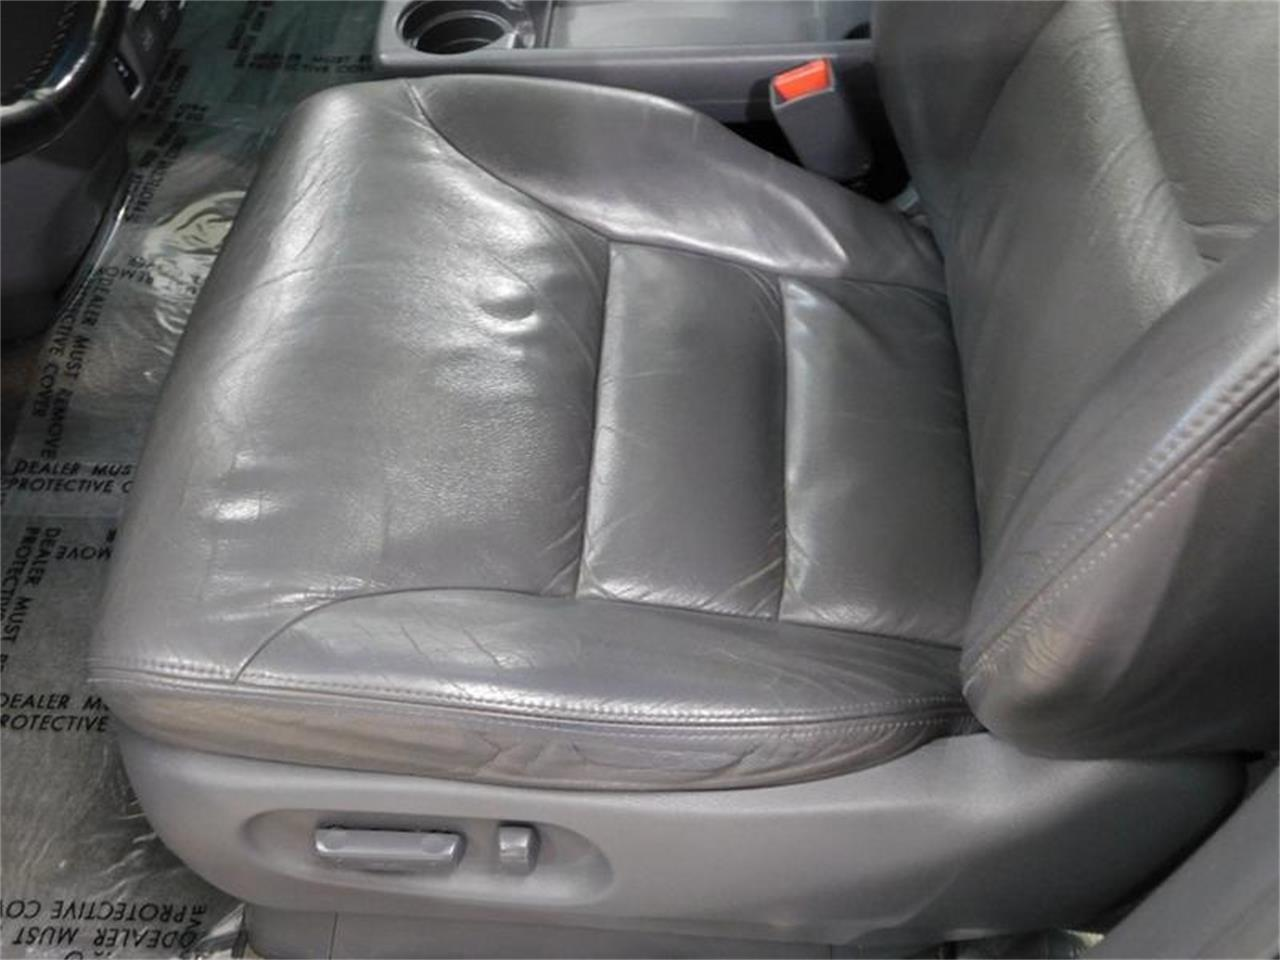 Large Picture of '06 Honda Odyssey located in New York - $6,580.00 Offered by Superior Auto Sales - QPN6